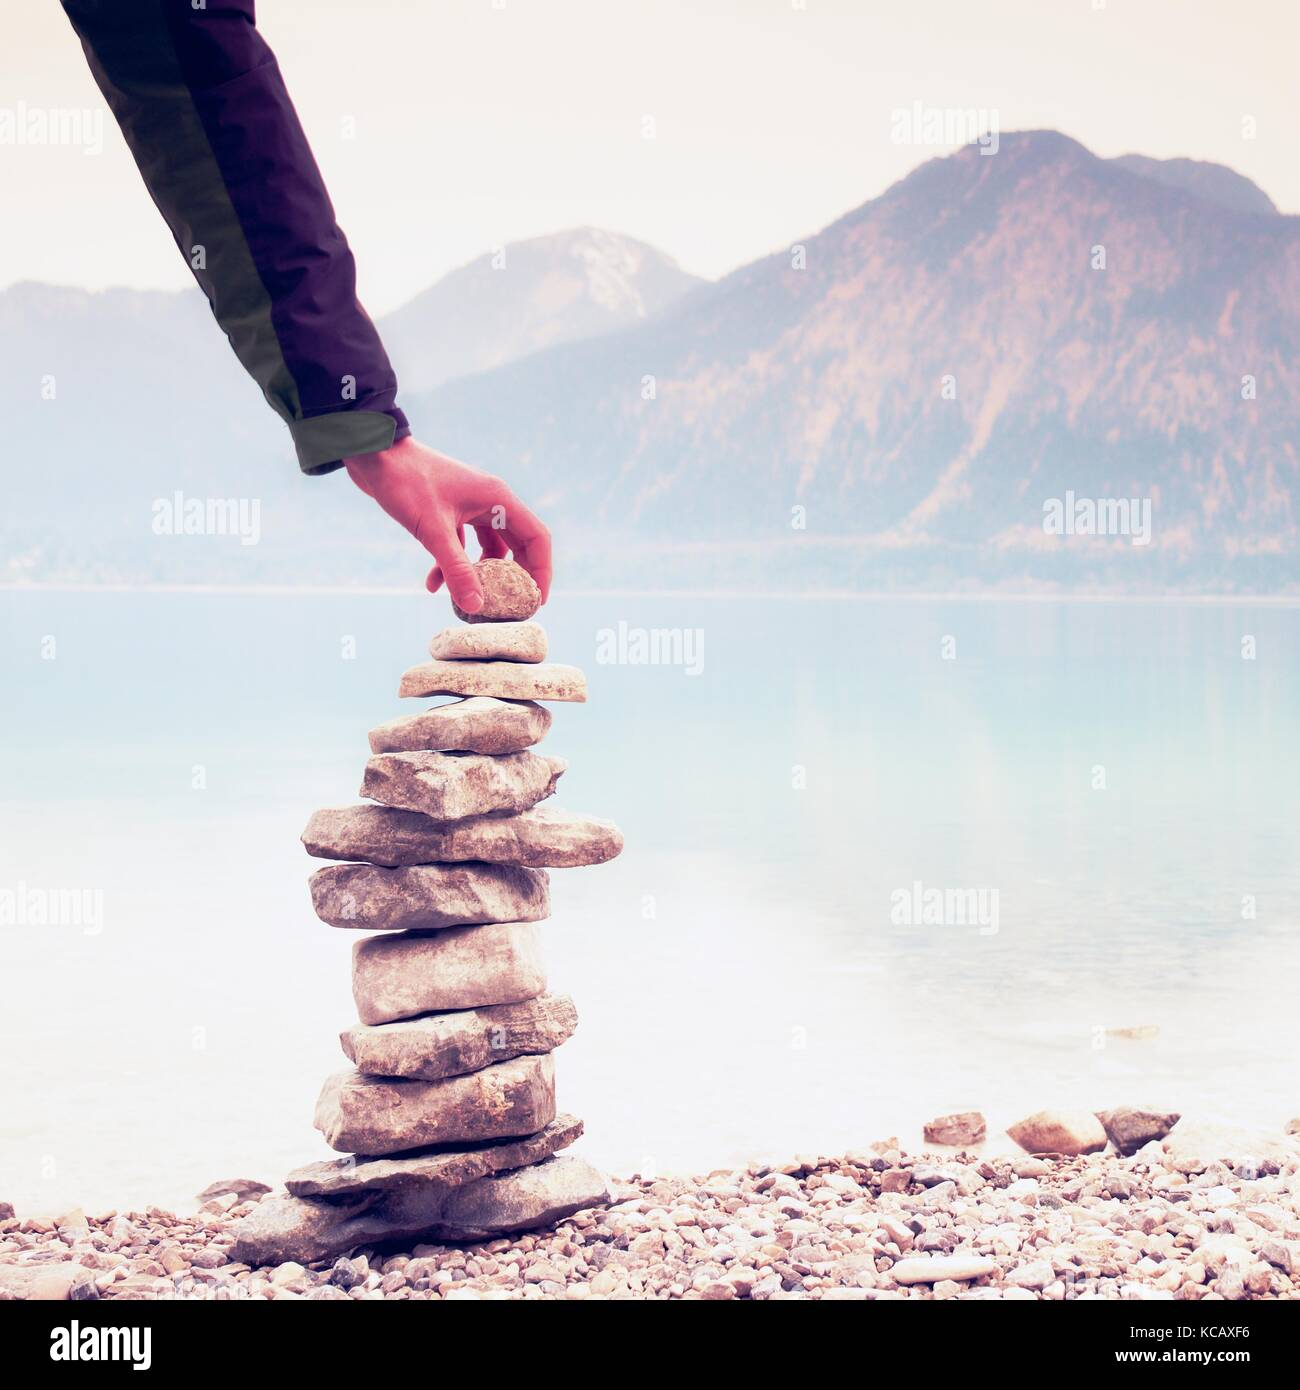 Man built pyramid from pebbles. Balanced stone pyramide on shore of blue water of mountain lake. Blue mountains - Stock Image